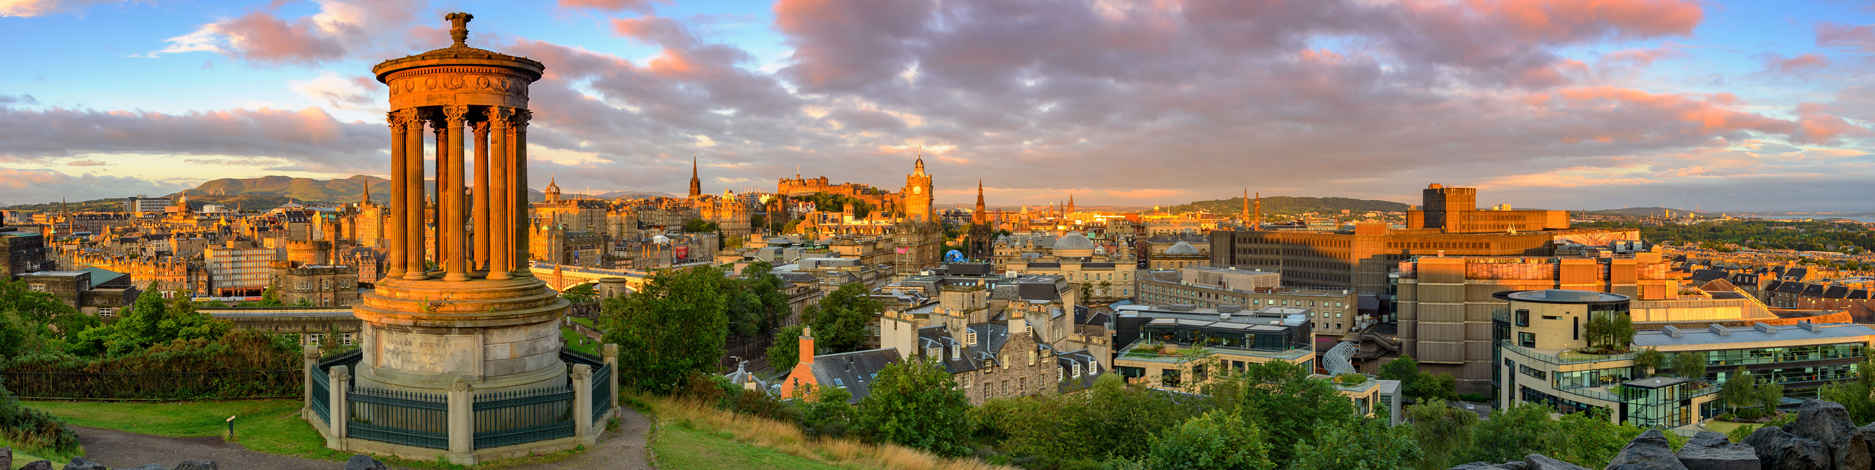 7 Reasons Edinburgh is the Perfect City for a Couple's Getaway